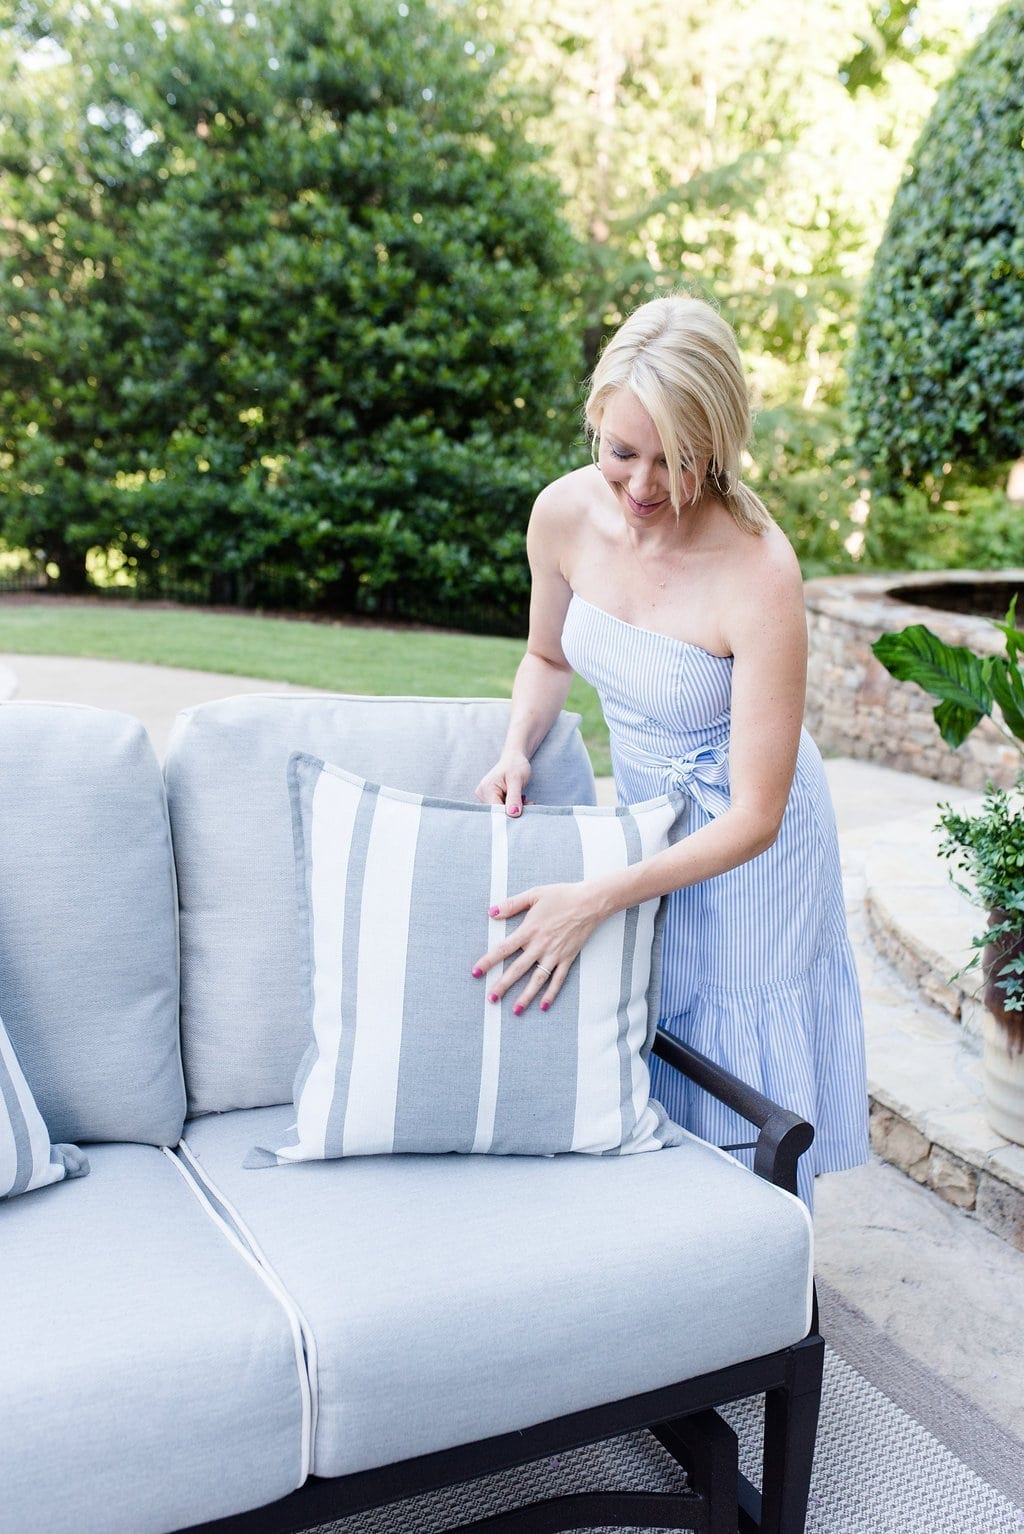 Serena and Lily outdoor pillows in gray and white stripe.